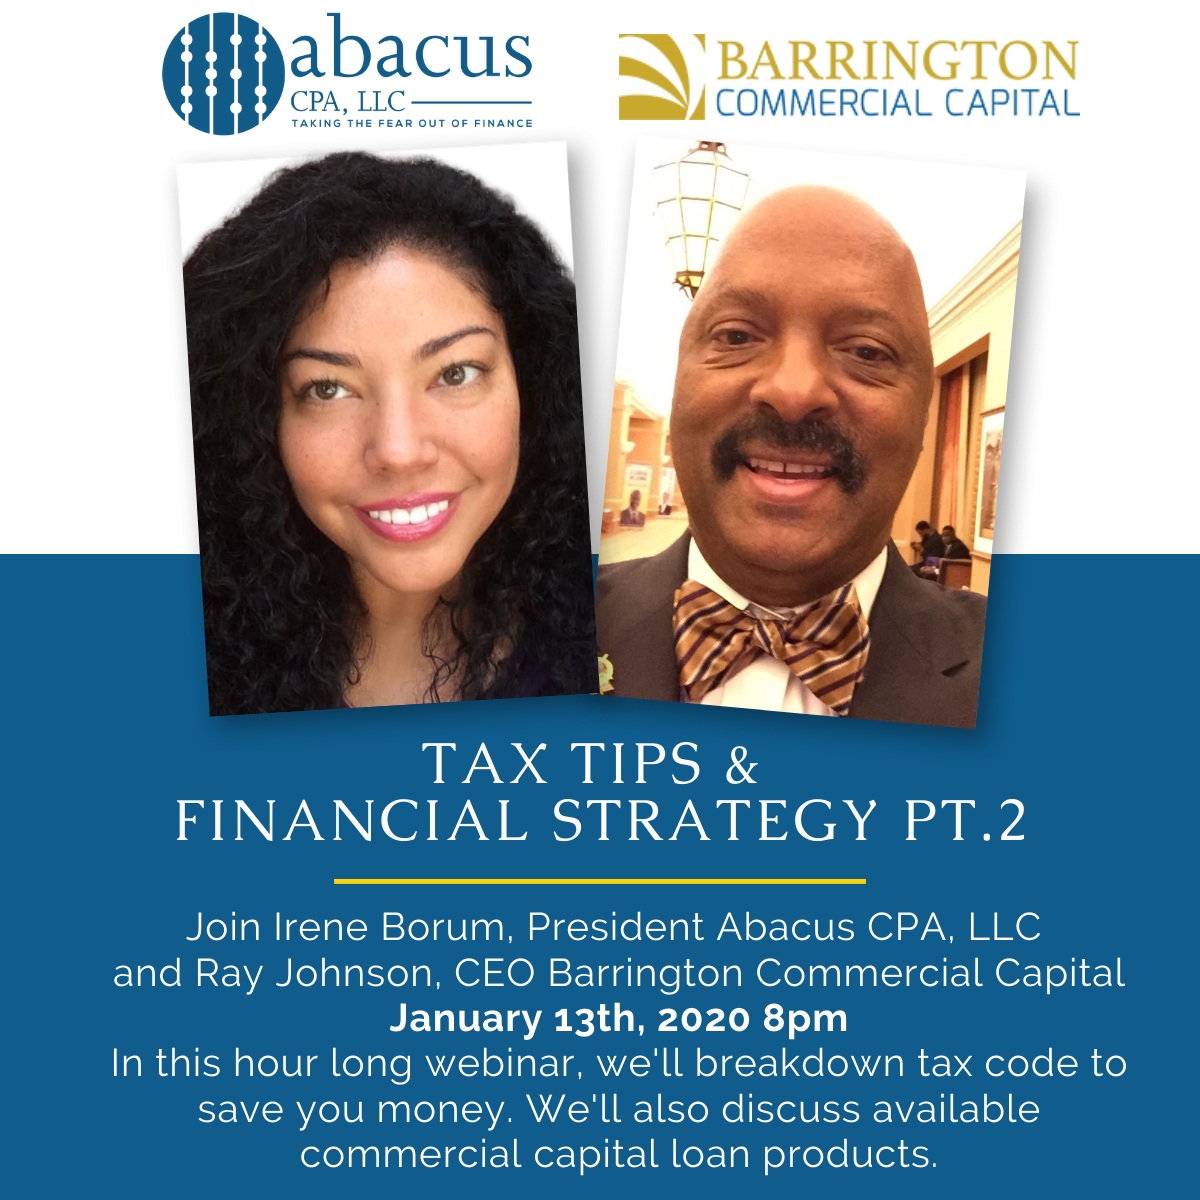 https://campaign-image.com/zohocampaigns/624862000003792004_zc_v59_1609707236370_tax_tips___financial_strategy_pt2_webinar.png